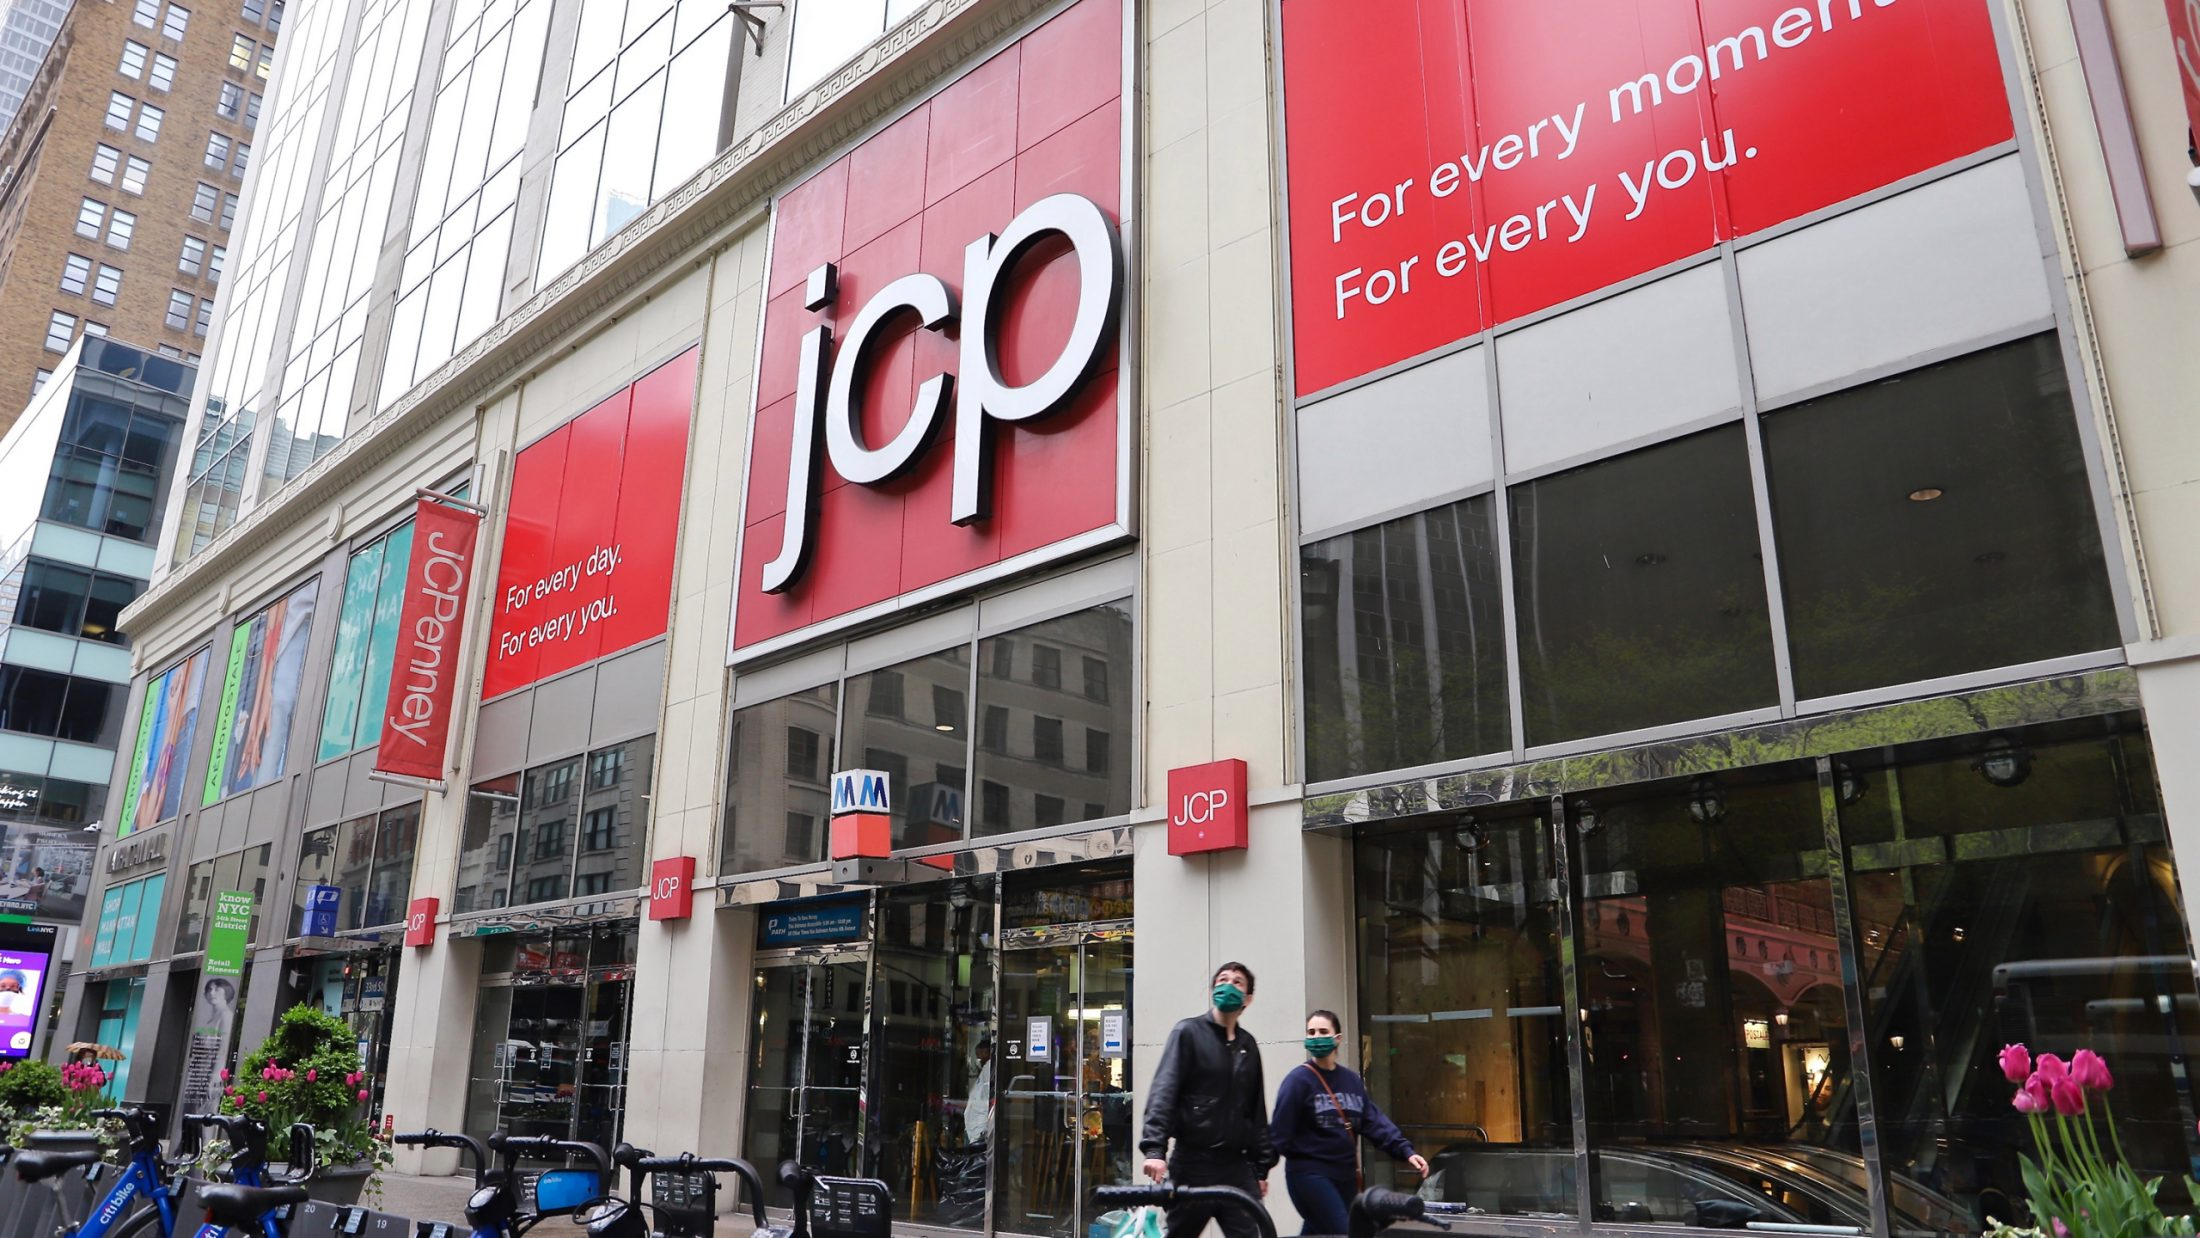 Simon's J.C. Penney deal defensive, but potentially very profitable – analysts